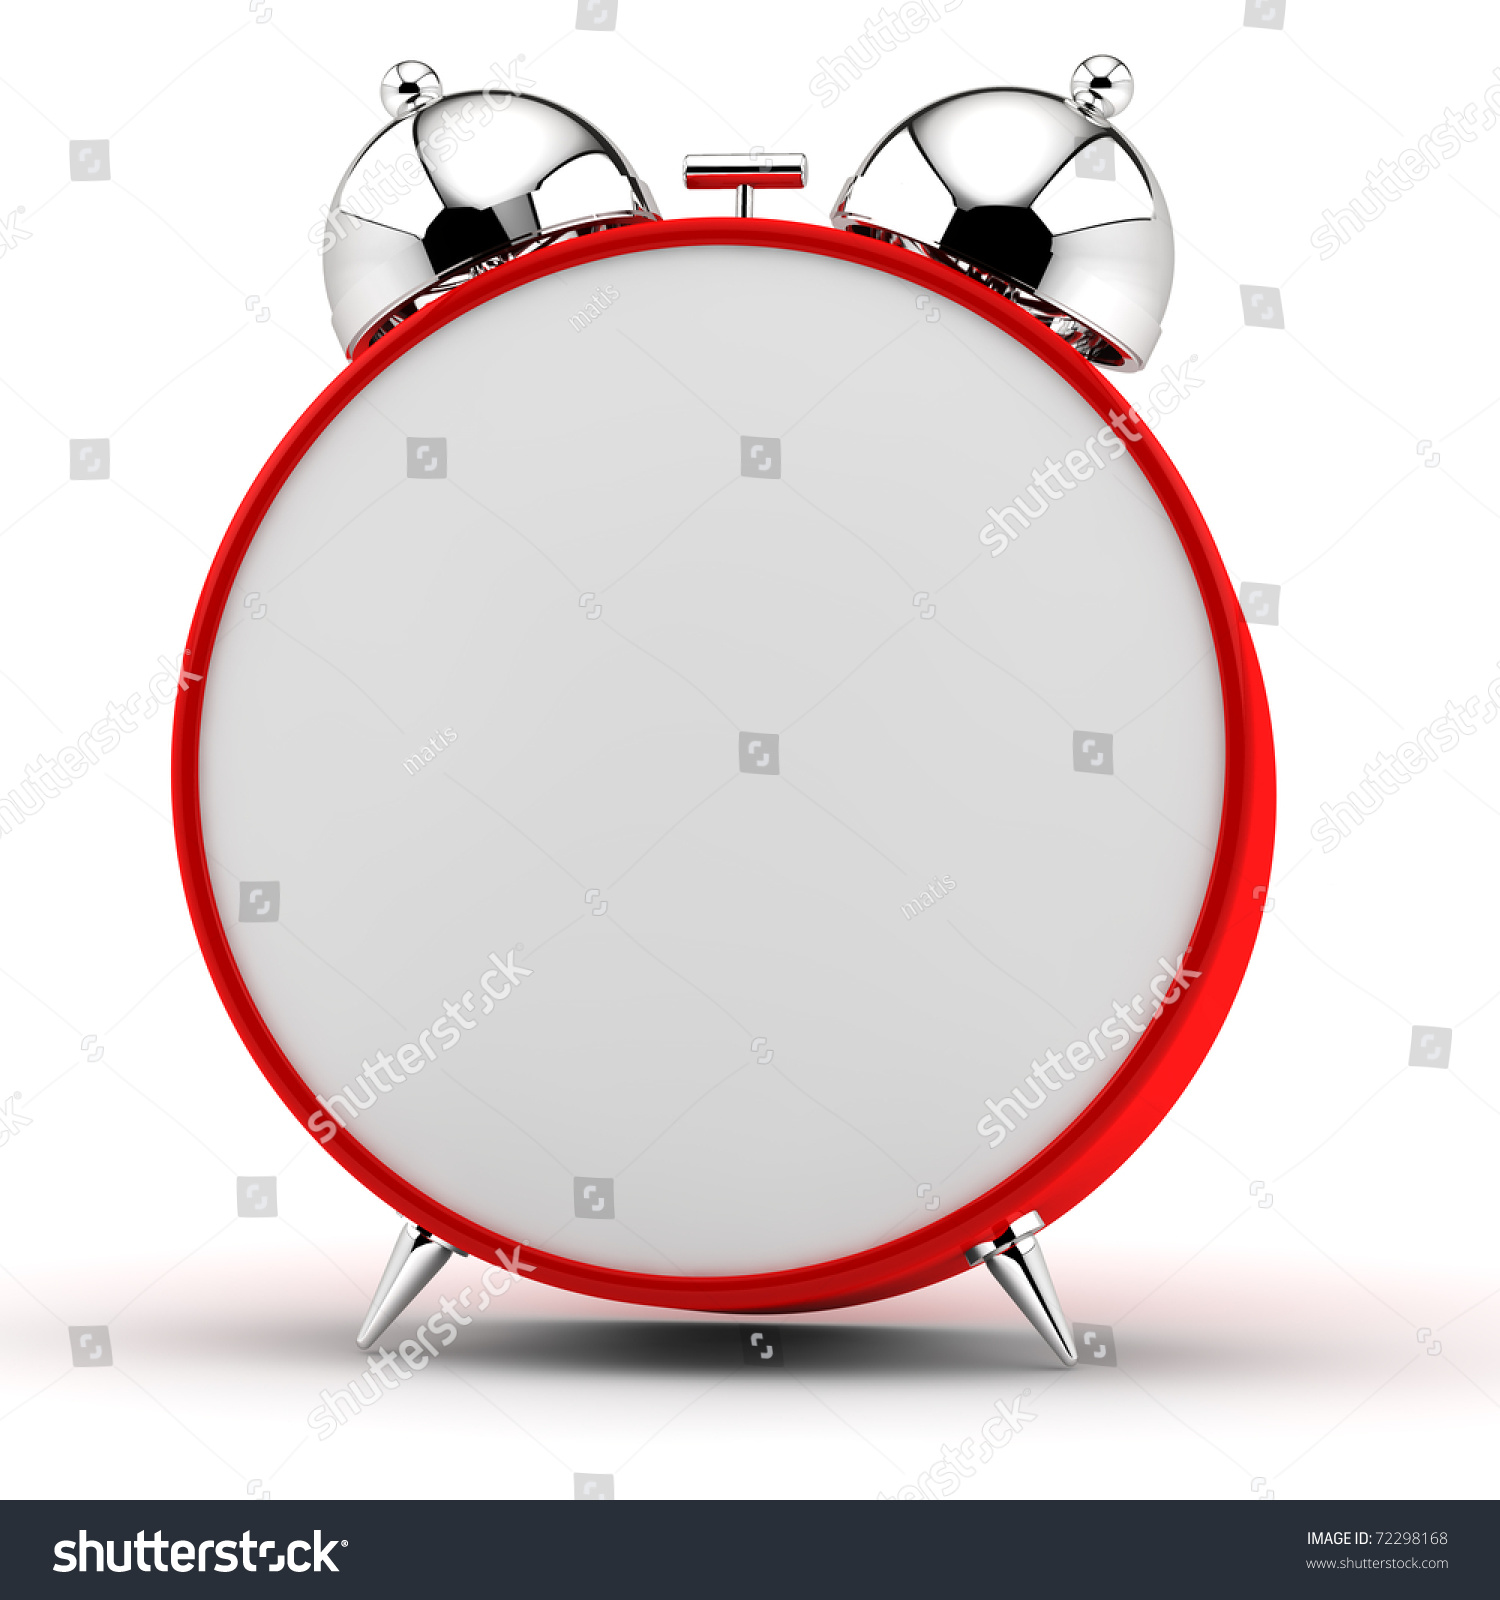 worksheet Empty Clock red alarm clock empty dial stock illustration 72298168 shutterstock with an dial